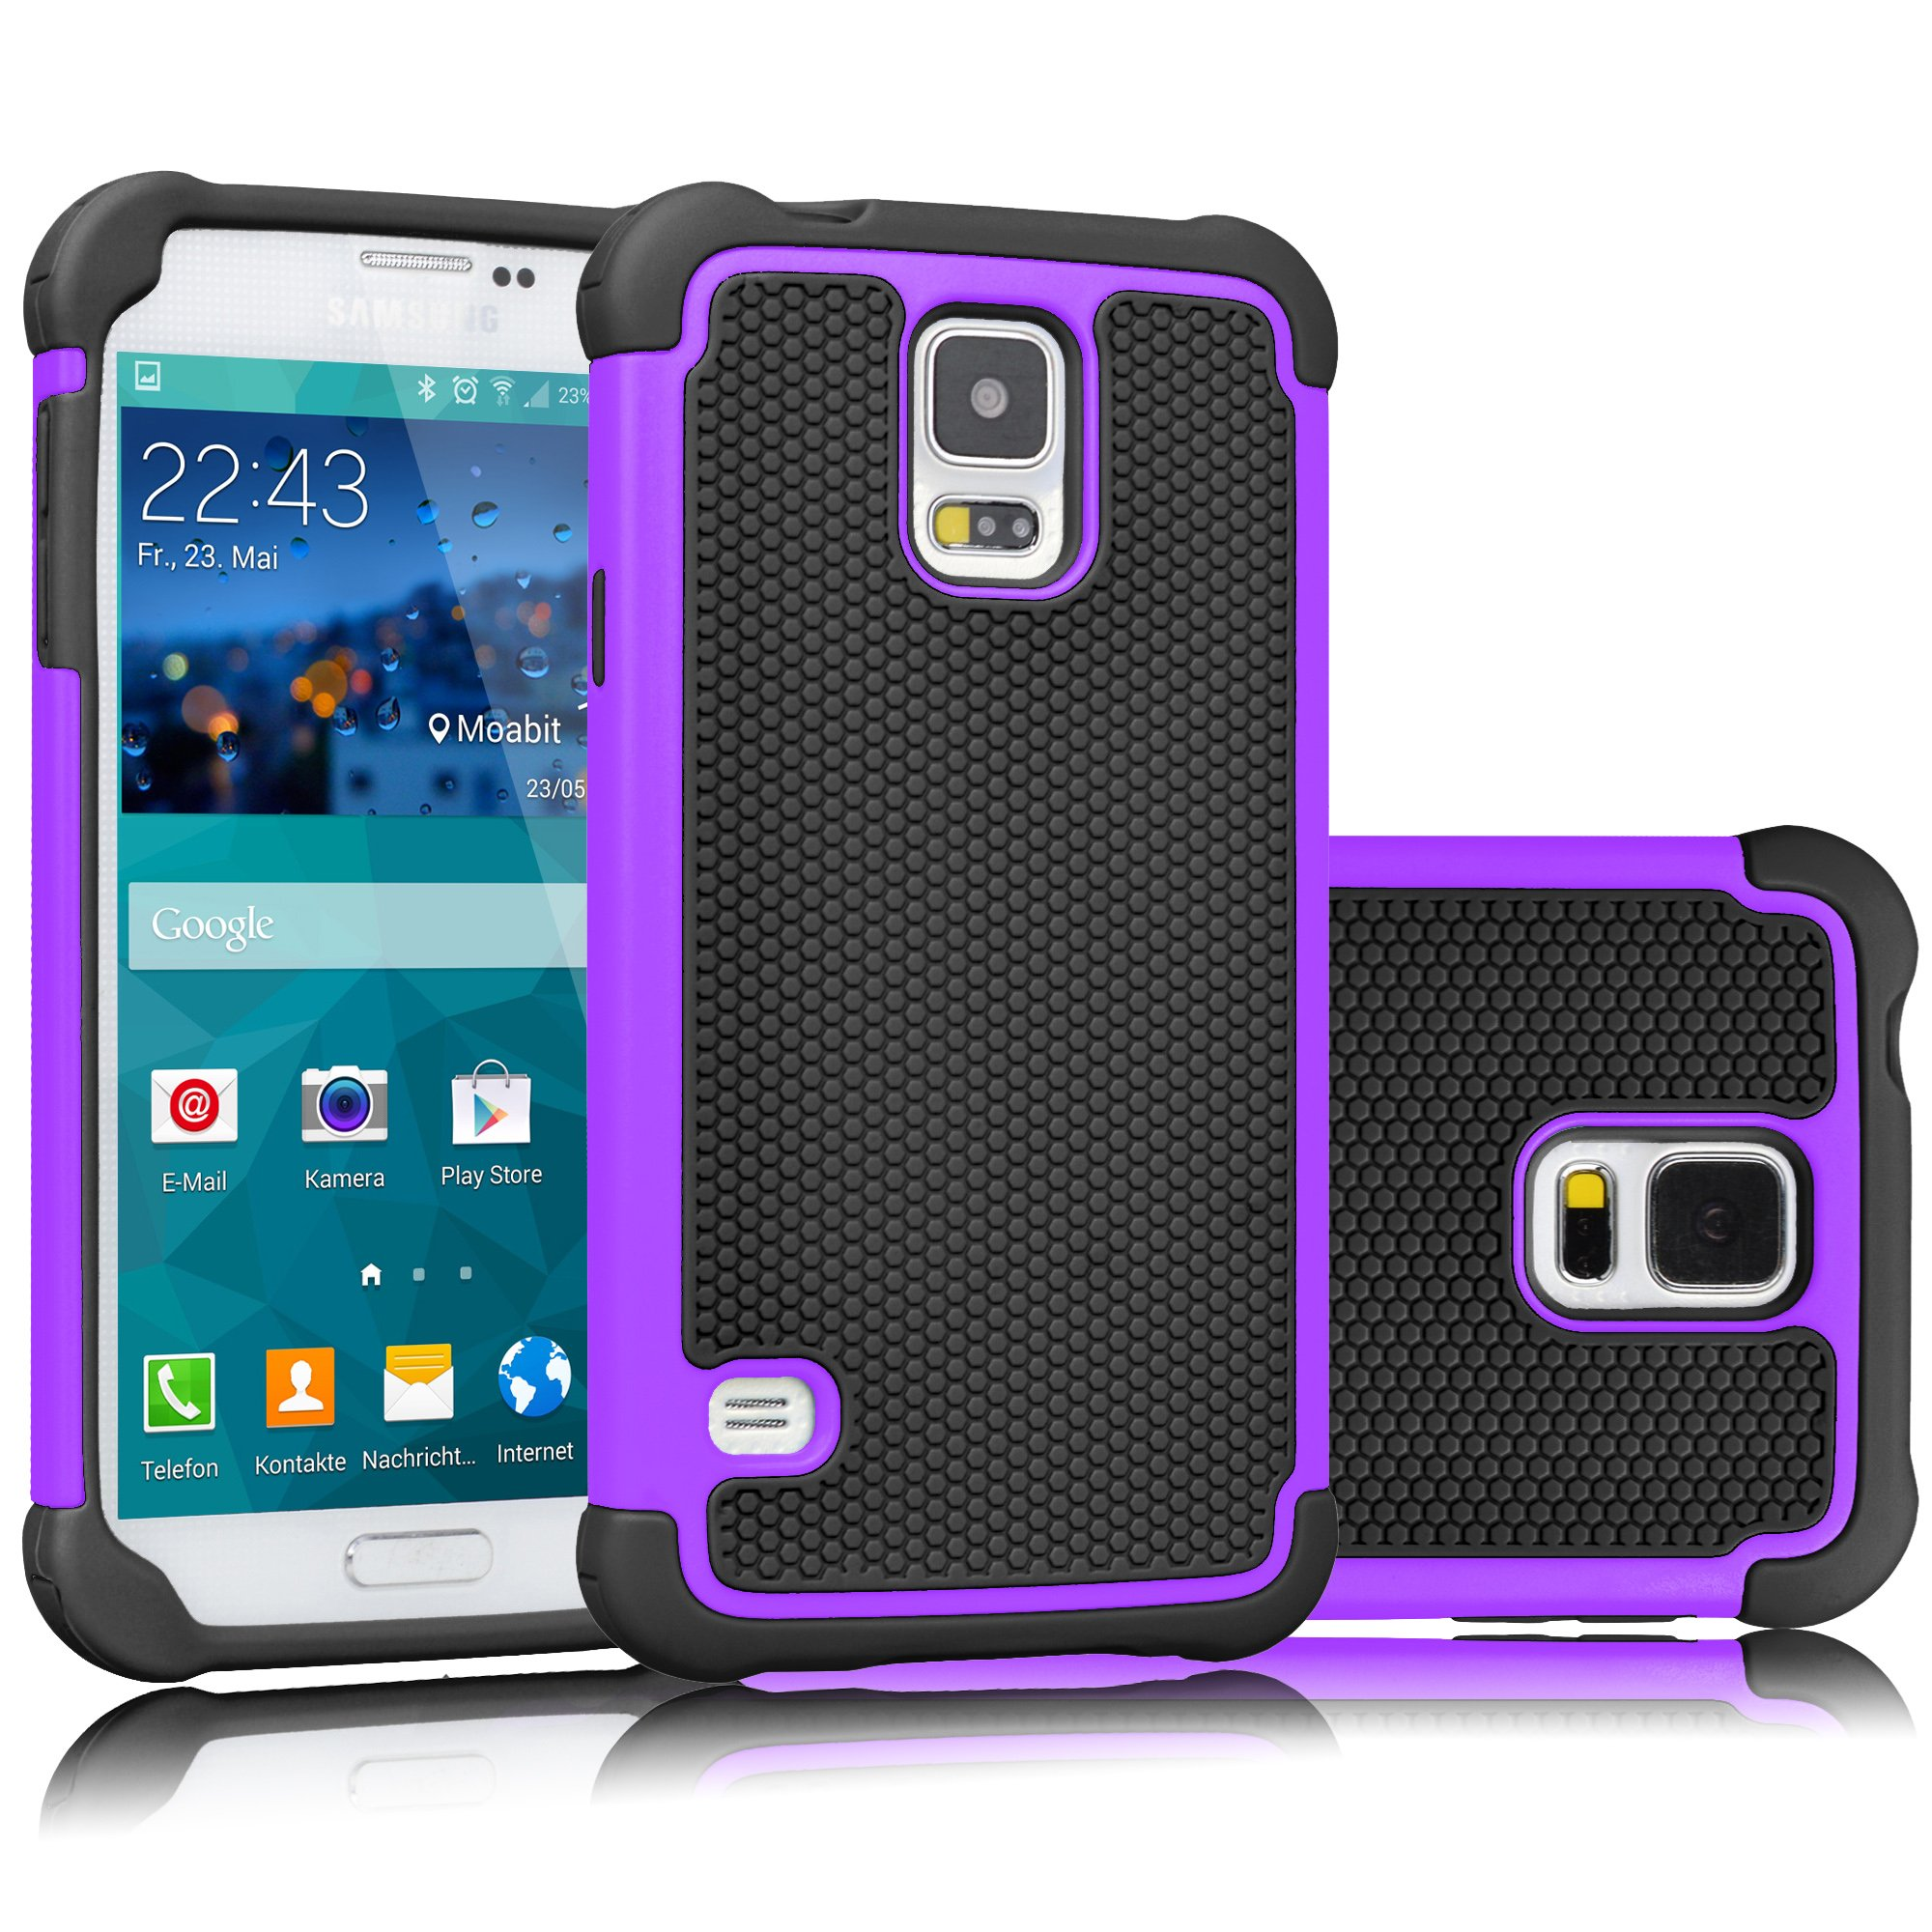 Tekcoo Galaxy S5 Case, [Tmajor] Sturdy [Purple/Black] Shock Absorbing Hybrid Rubber Plastic Impact Defender Rugged Slim Hard Case Cover Bumper for Samsung Galaxy S5 S V I9600 GS5 All Carriers